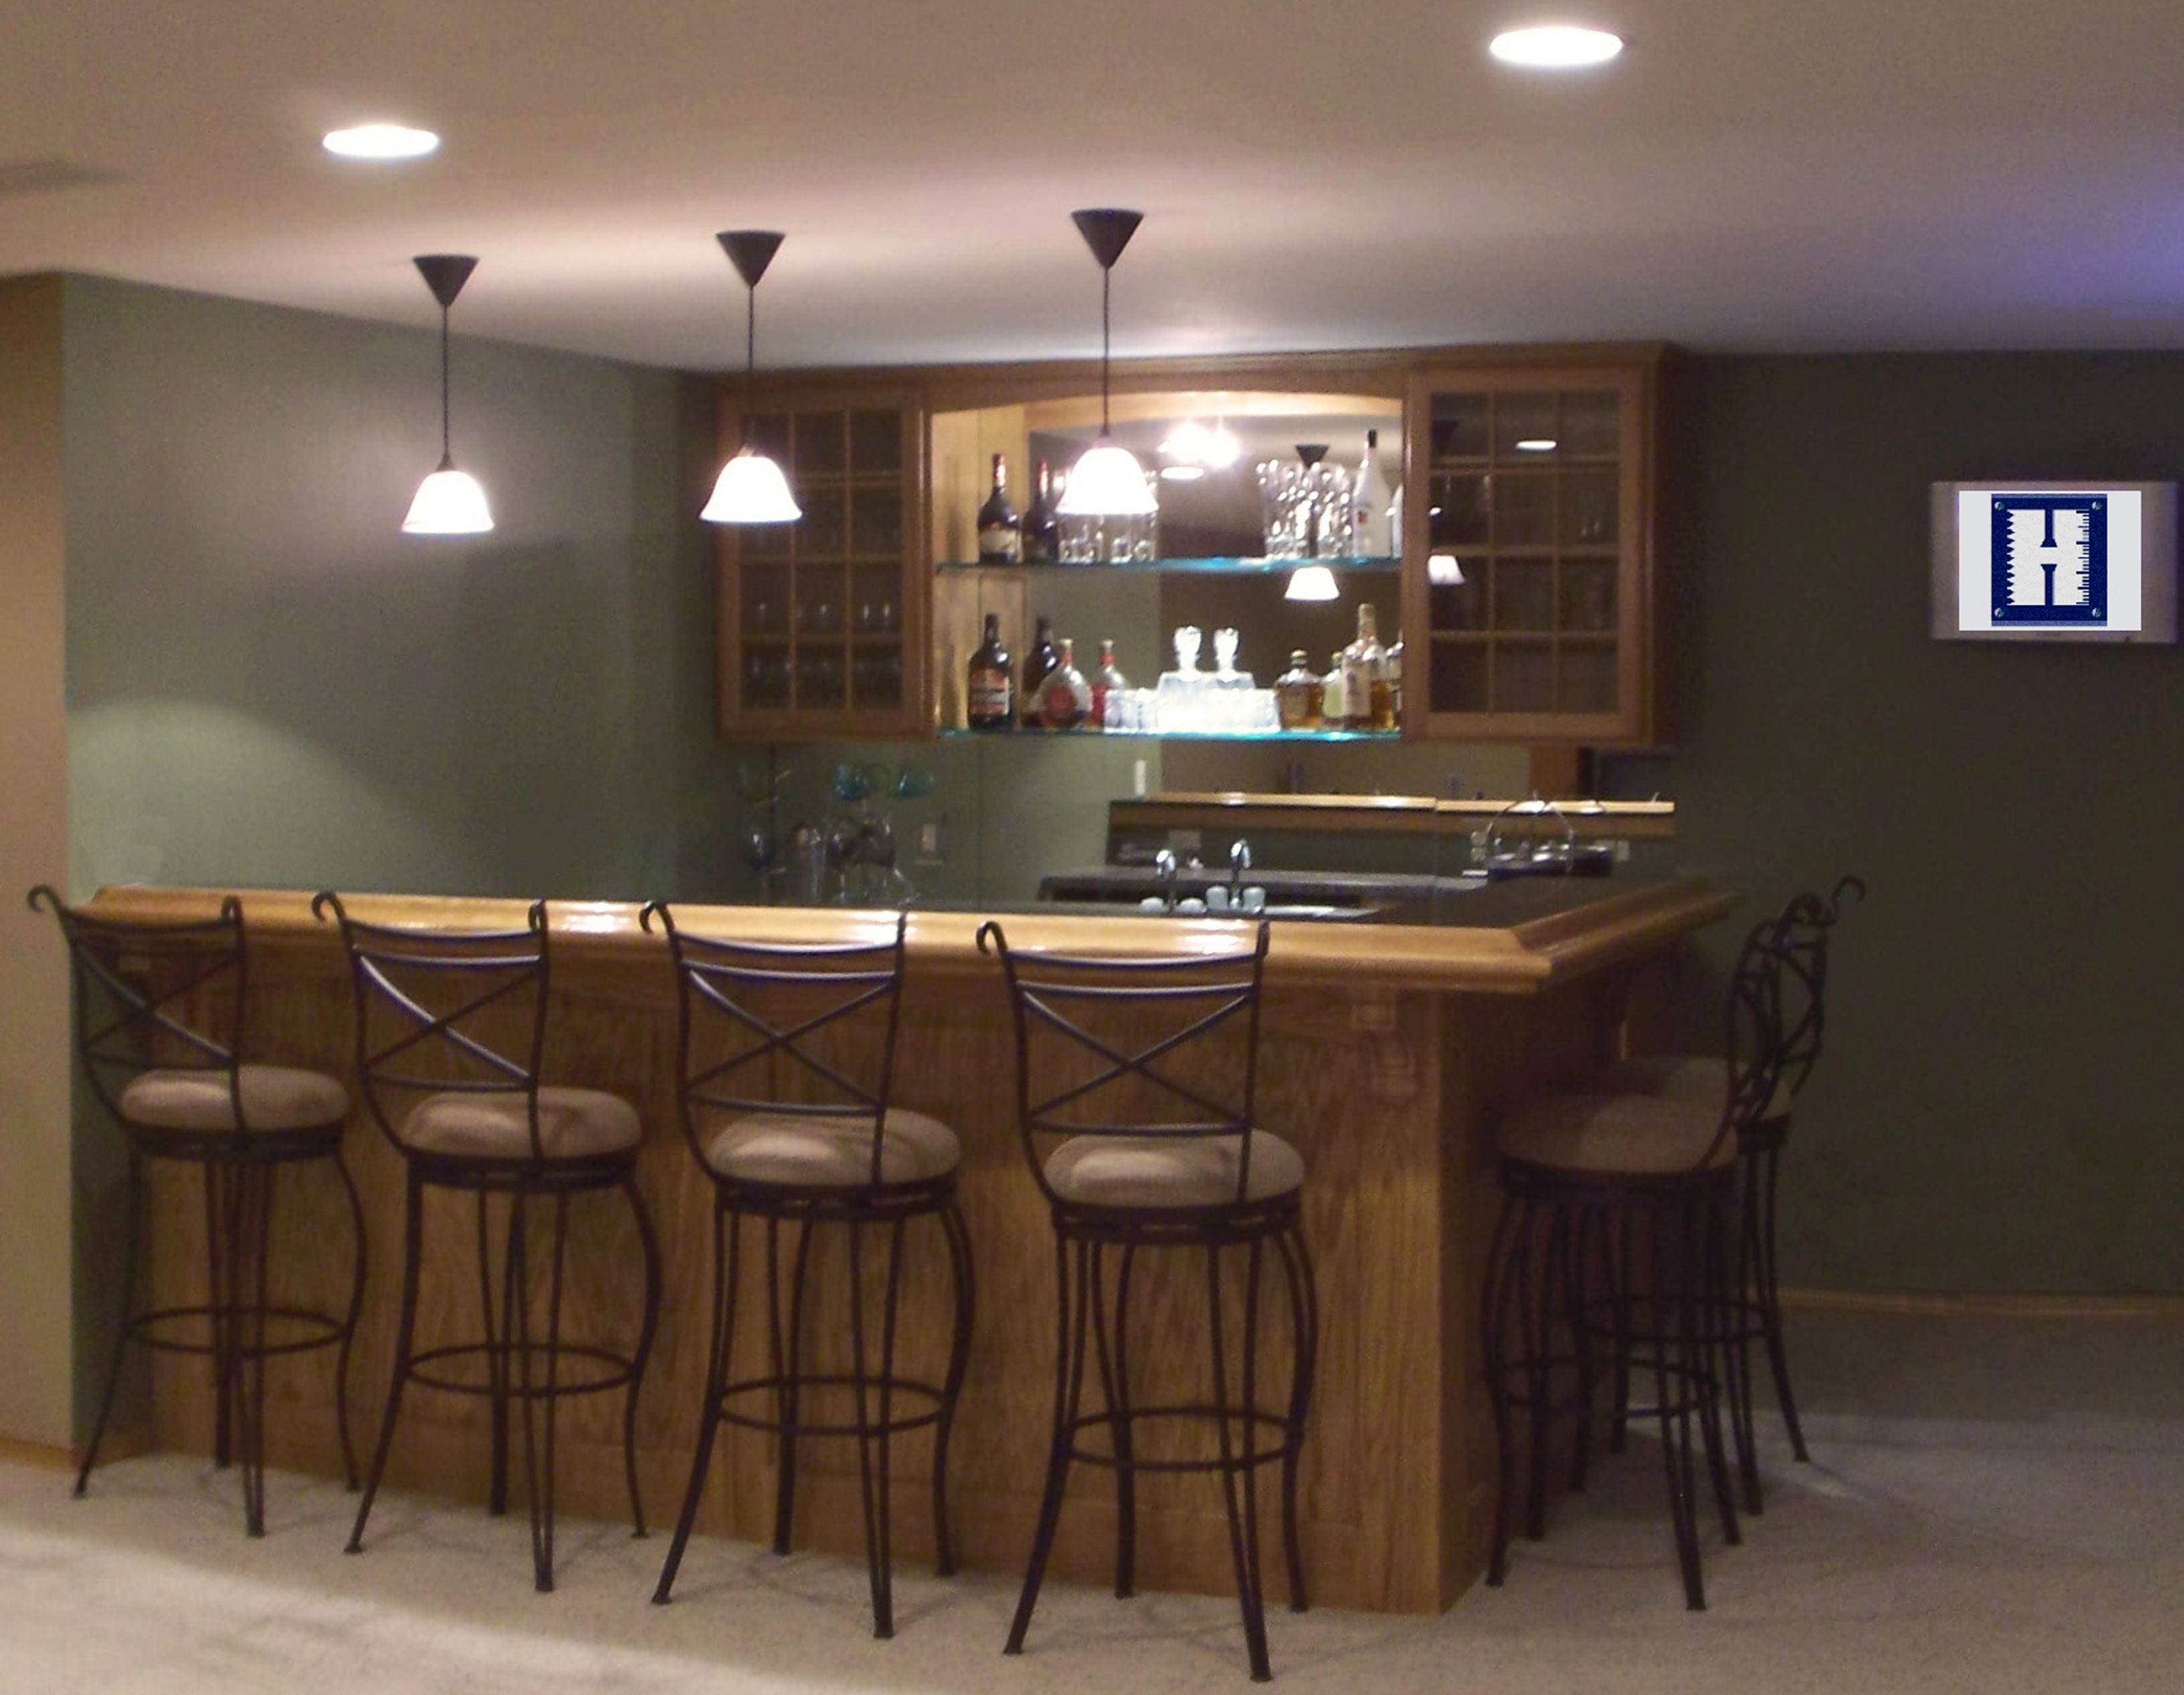 Design Bar Ideas For Basement best home bar pictures ideas basement bars and basements designs small ideas